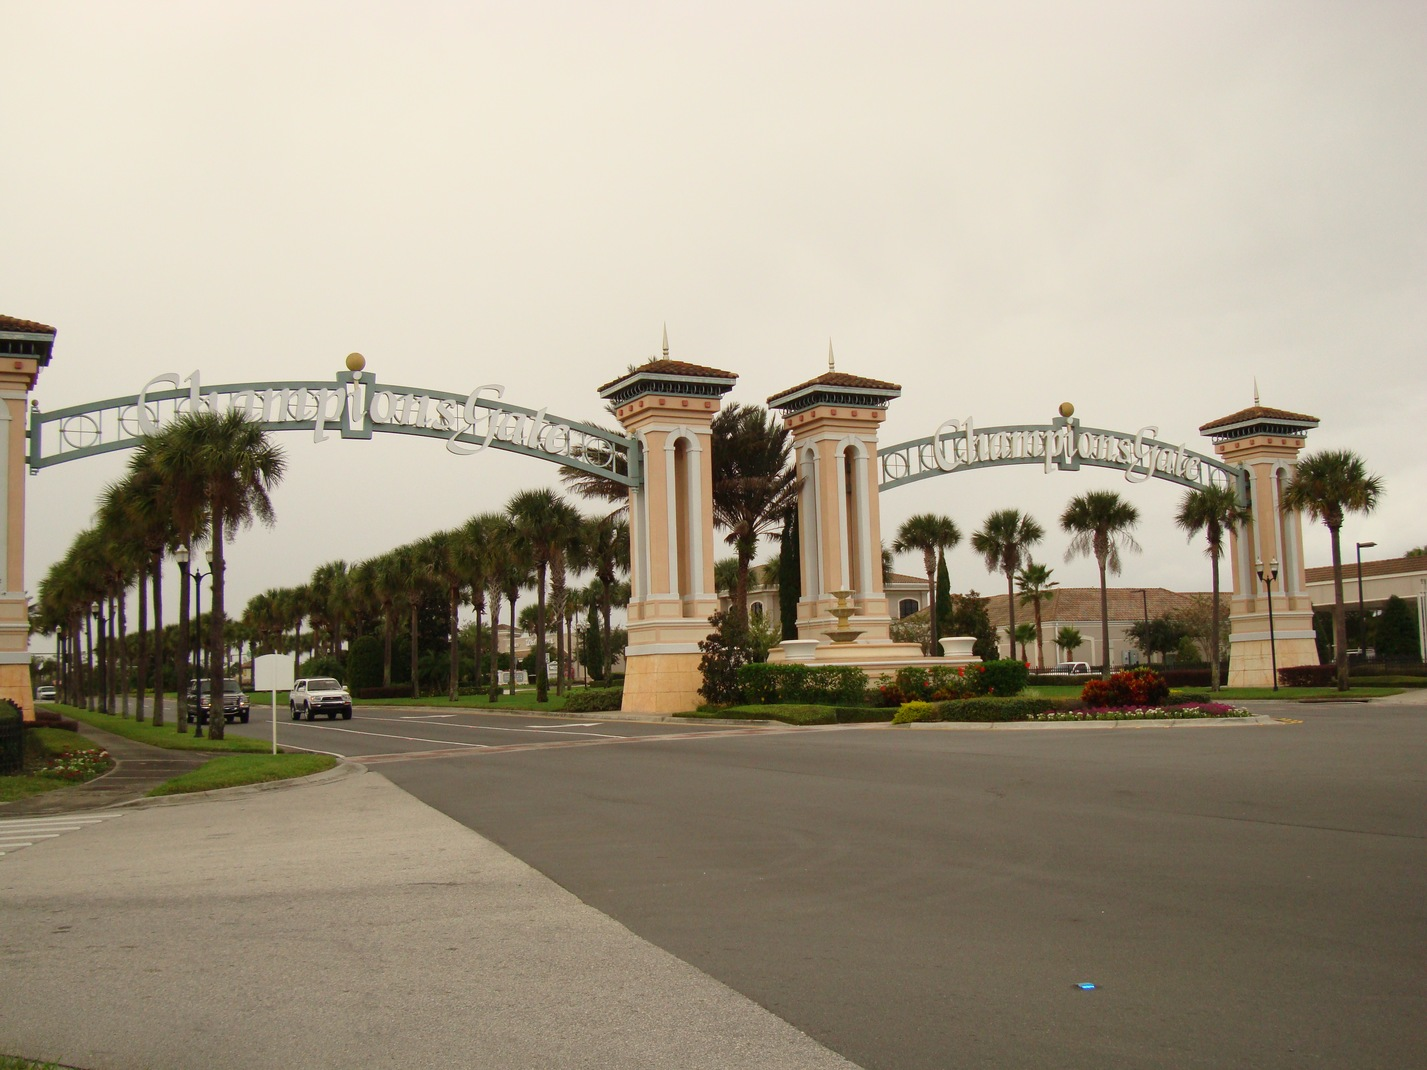 Vacation Homes for Sale Near Disney World and the Orlando ...